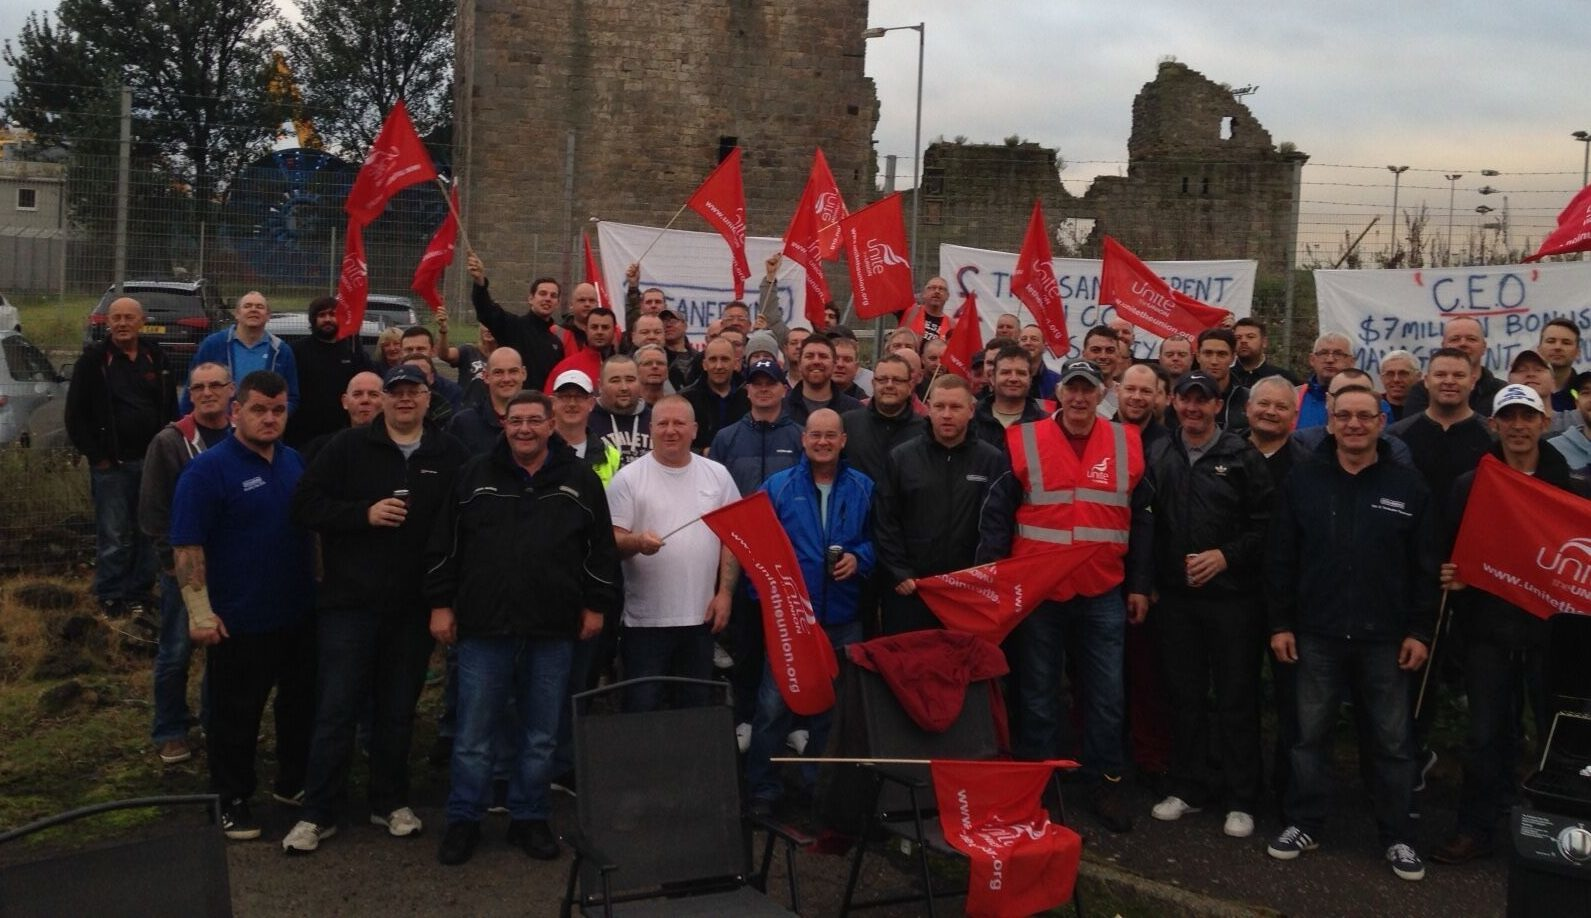 Staff at Oceaneering walked out earlier this month.